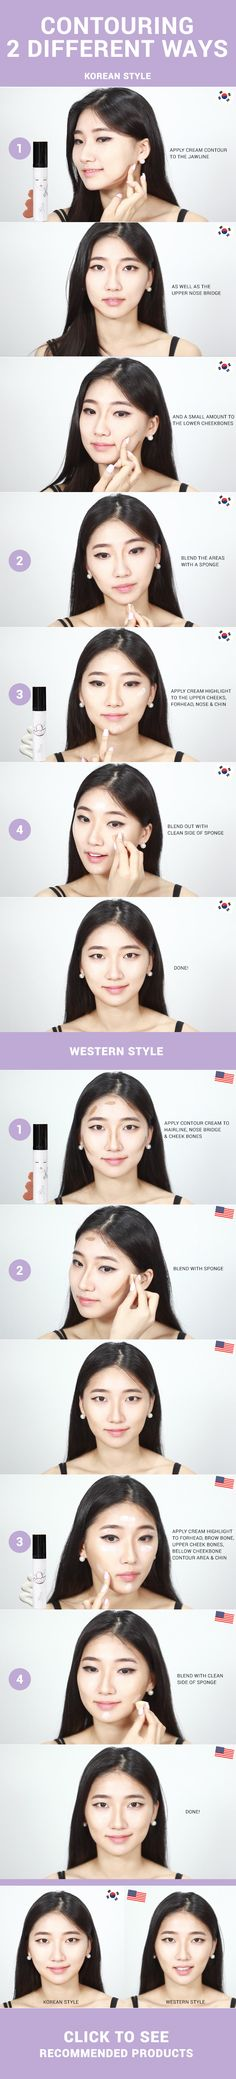 Most of us are familiar with Western style makeup contouring, but it doesn't…